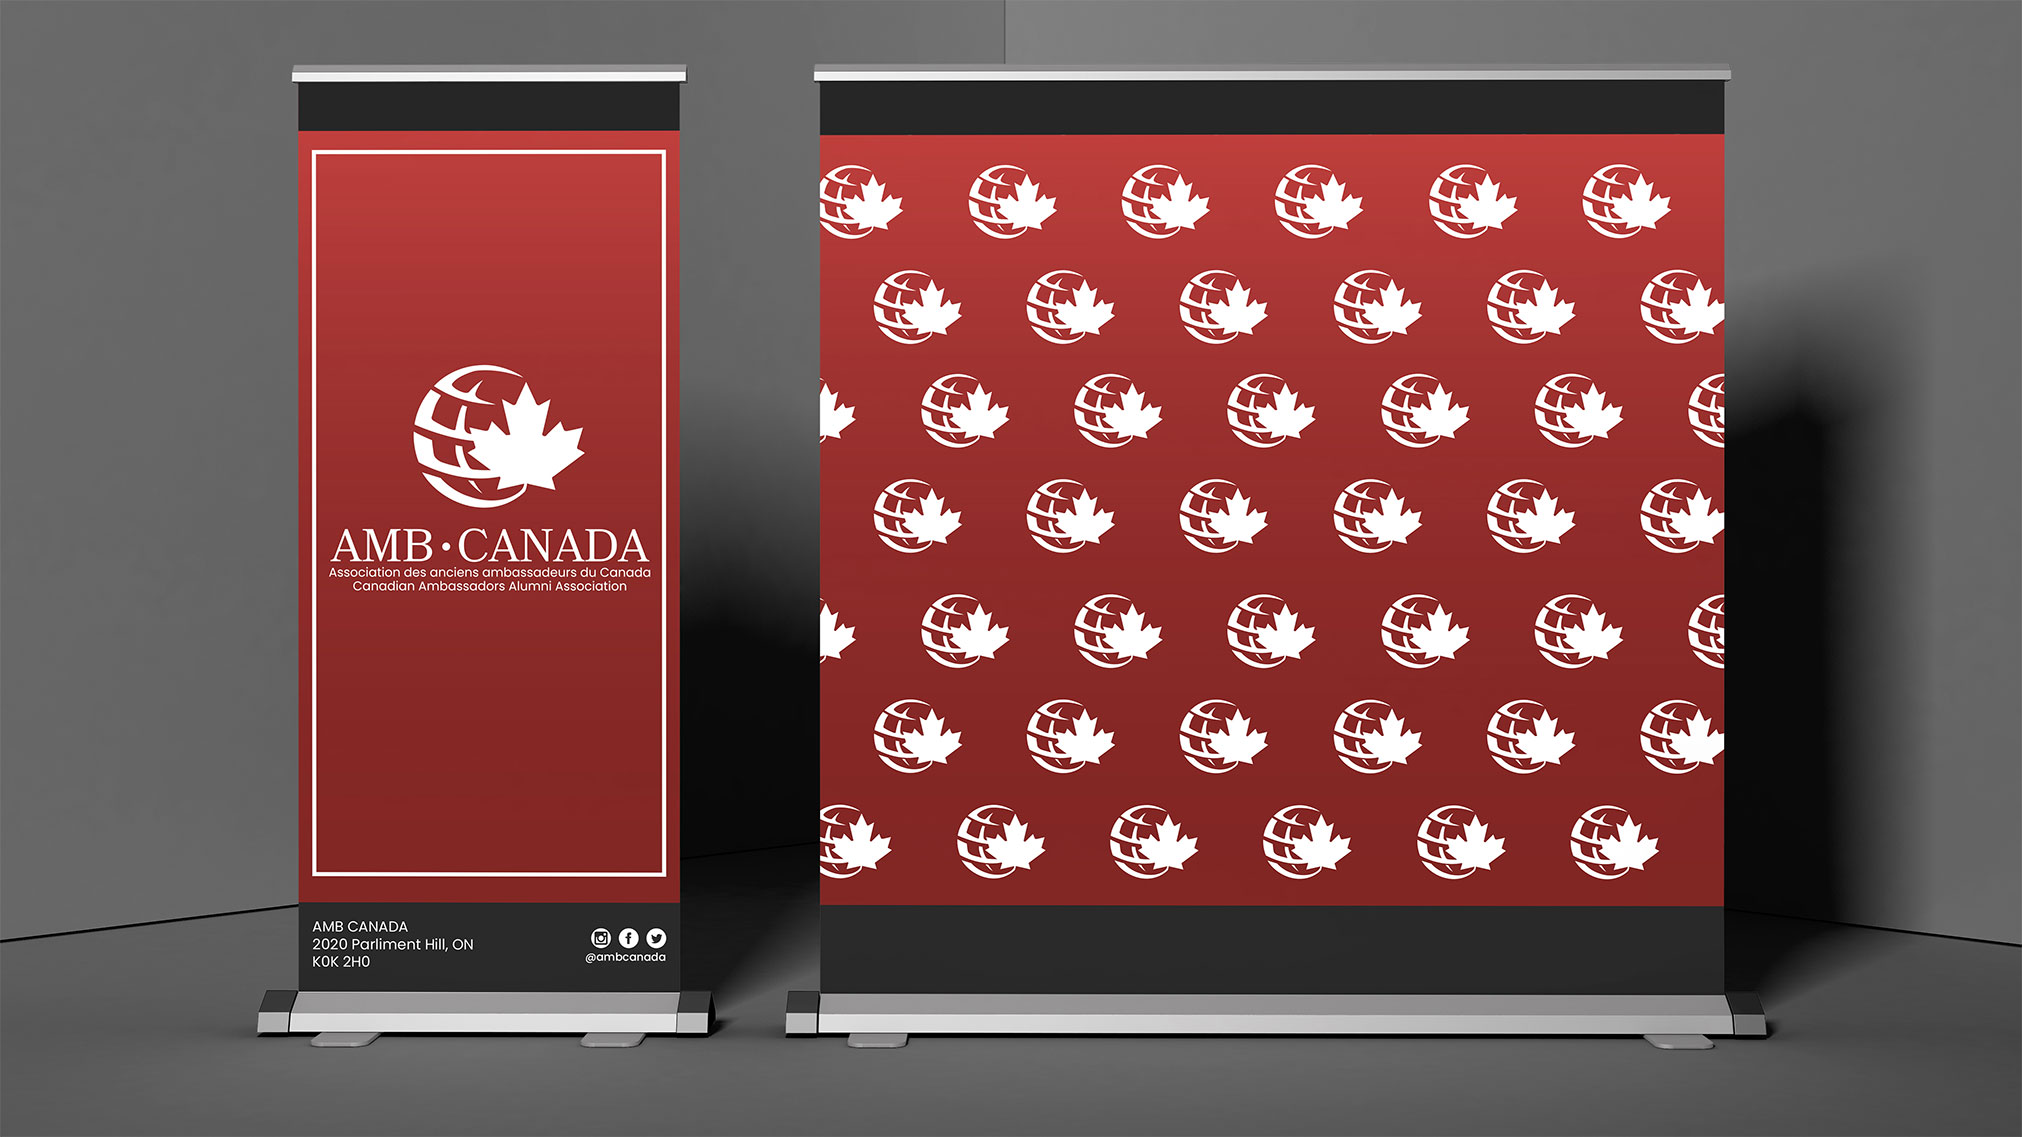 AMBCANADA is a non-profit organization of former diplomatic Canadian Heads of Mission & Ambassadors. The goal of this project is to modernize the organization's logo and build a memorable brand. The new logo includes bilingual scripts. The new design will be applied to letterheads, websites, banners and promotional materials. AMBCANADA's logo design represents the simplicity and accessibility of AMBCANADA. The ability of connection, leadership and voice is portrayed through this logo design.